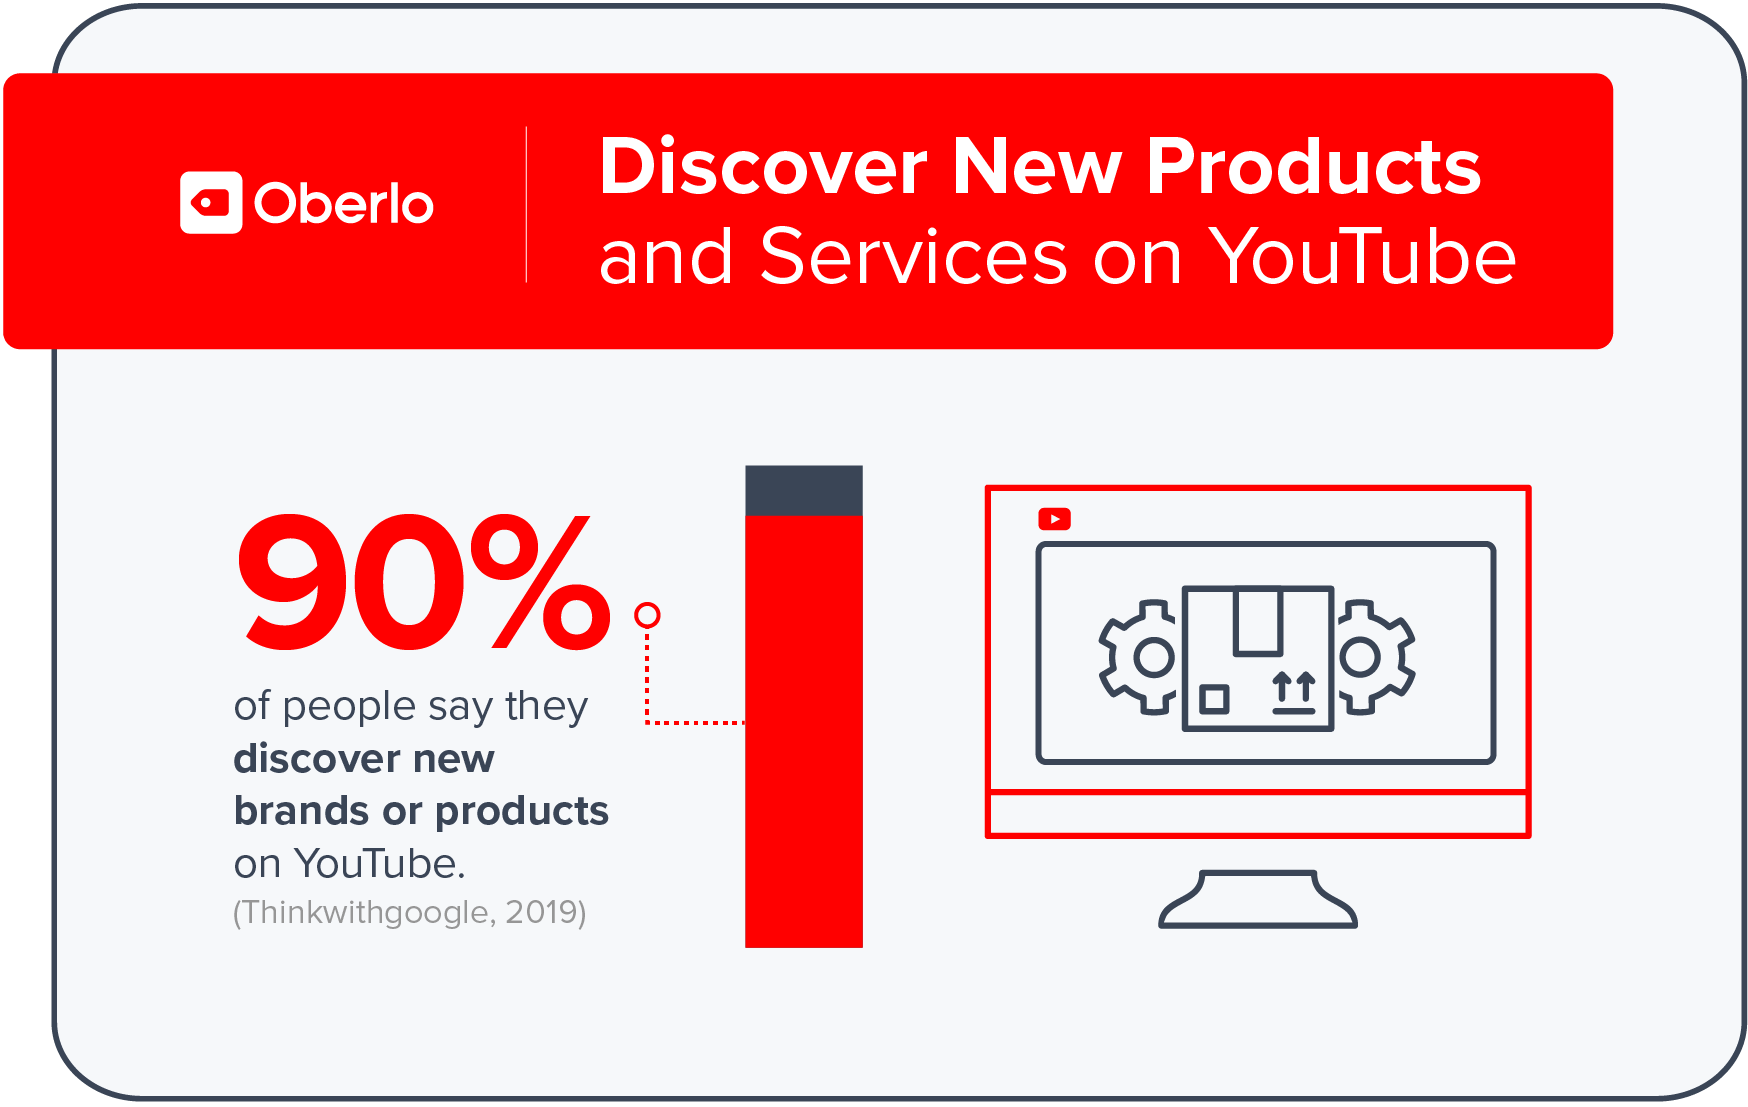 Youtube-users-discover-new-products-08